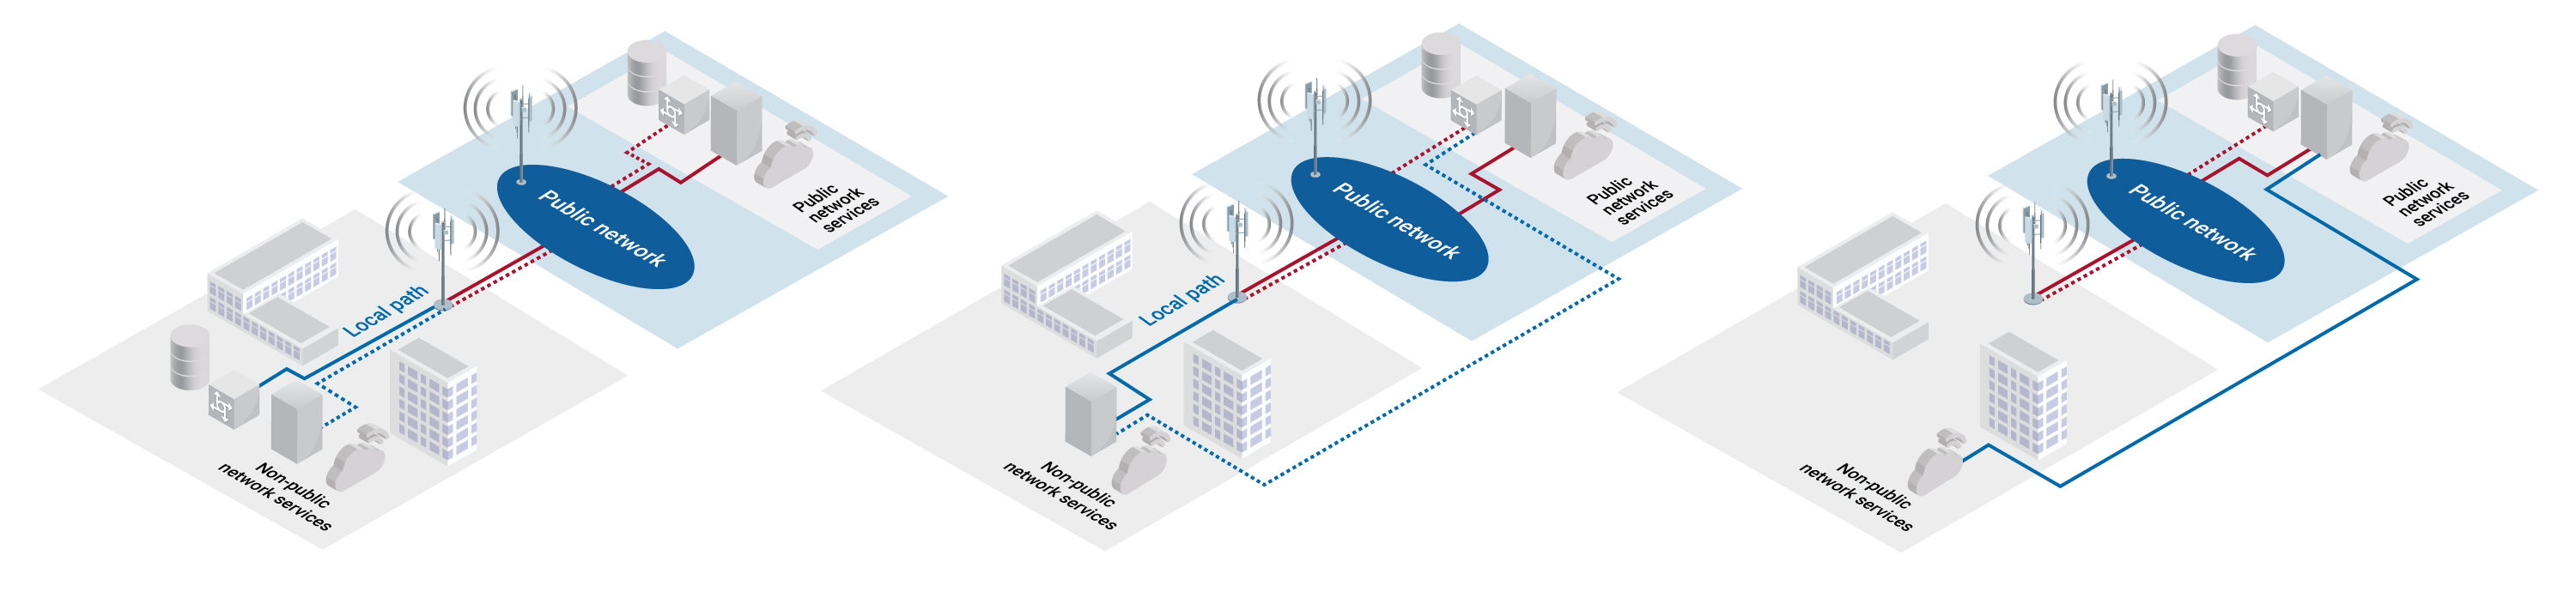 Figure 2. 5G model combining both 5G private and public wireless networks.